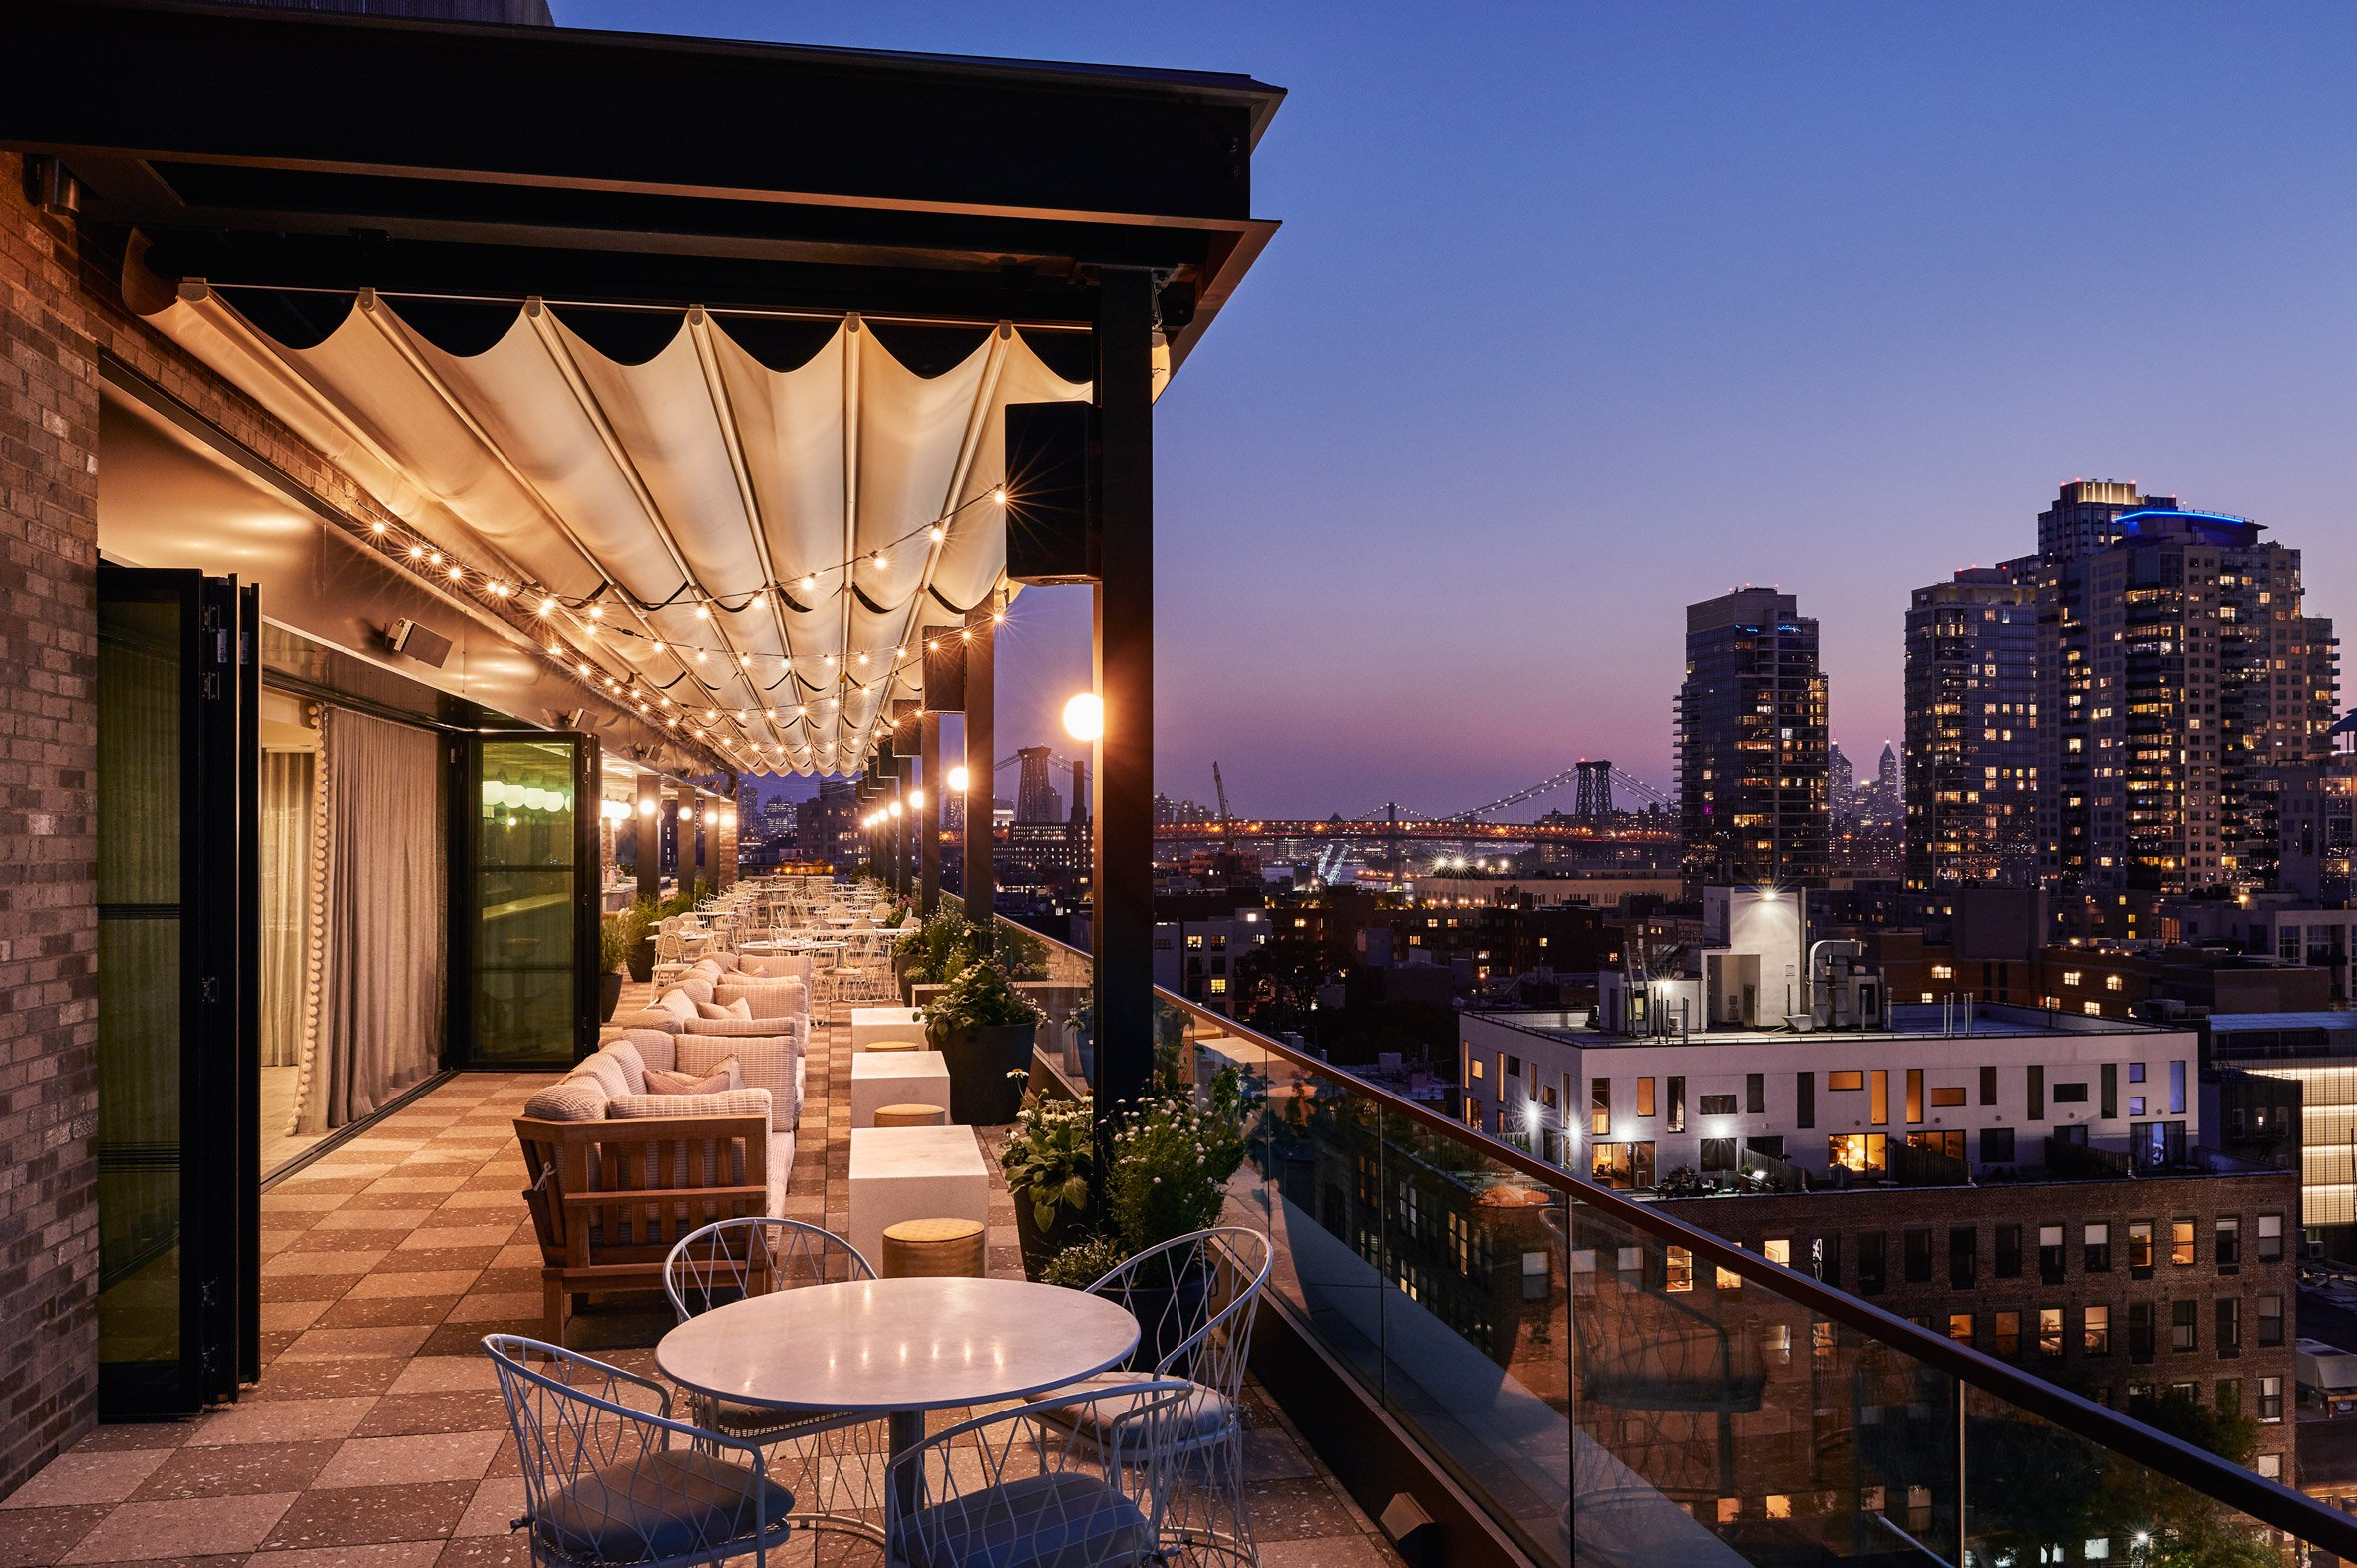 The Hoxton Hotel in Williamsburg